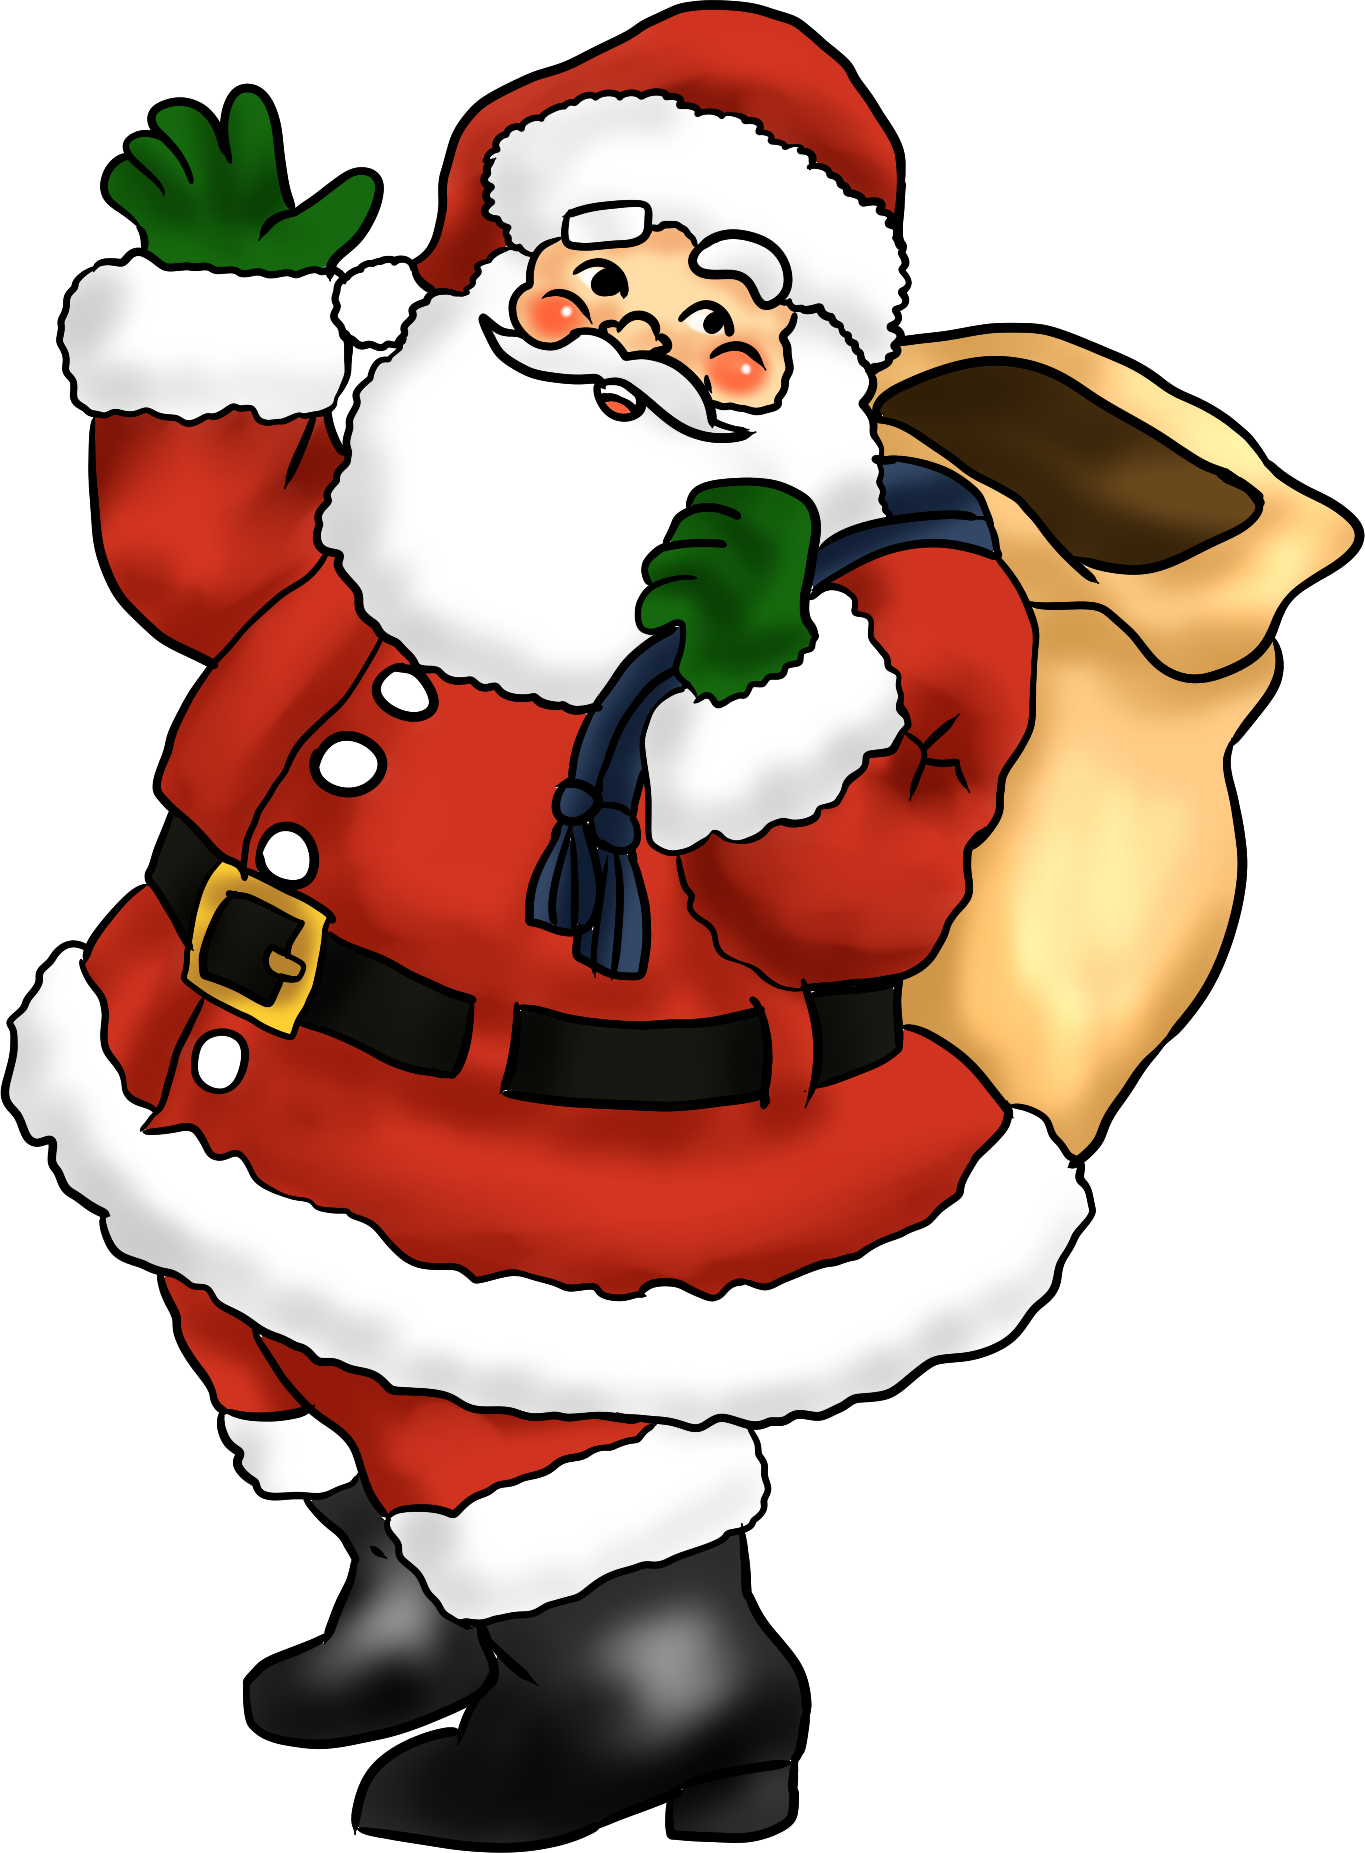 Santa reading a book clipart black and white library 2016 - Newsletter 42 - Come Meet Santa at the Greenhouse this ... black and white library